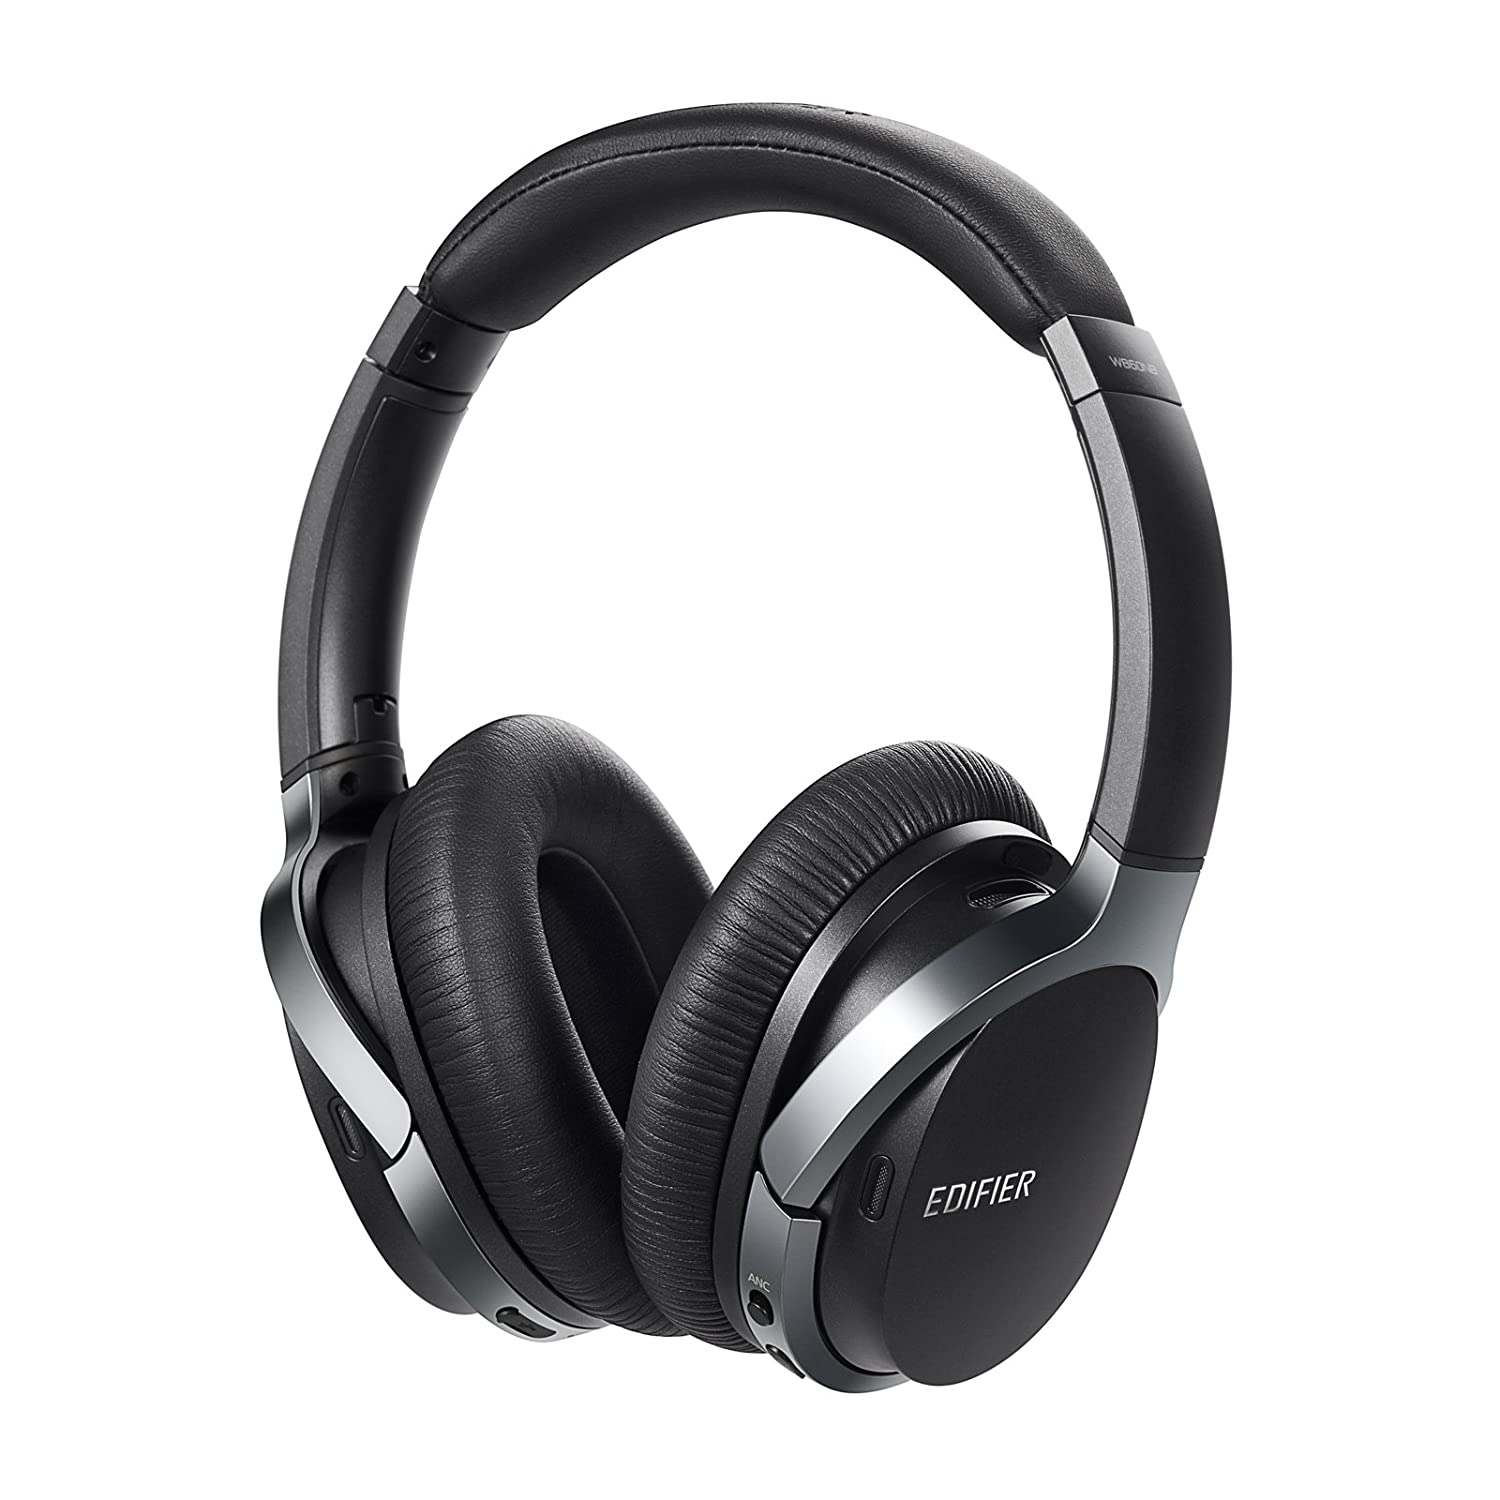 Edifier W860NB Active Noise Cancelling Foldable Over-Ear Bluetooth Headphones with Mic, Smart Touch, 25 Hours of ANC Battery Life, Travel Case, and NFC...